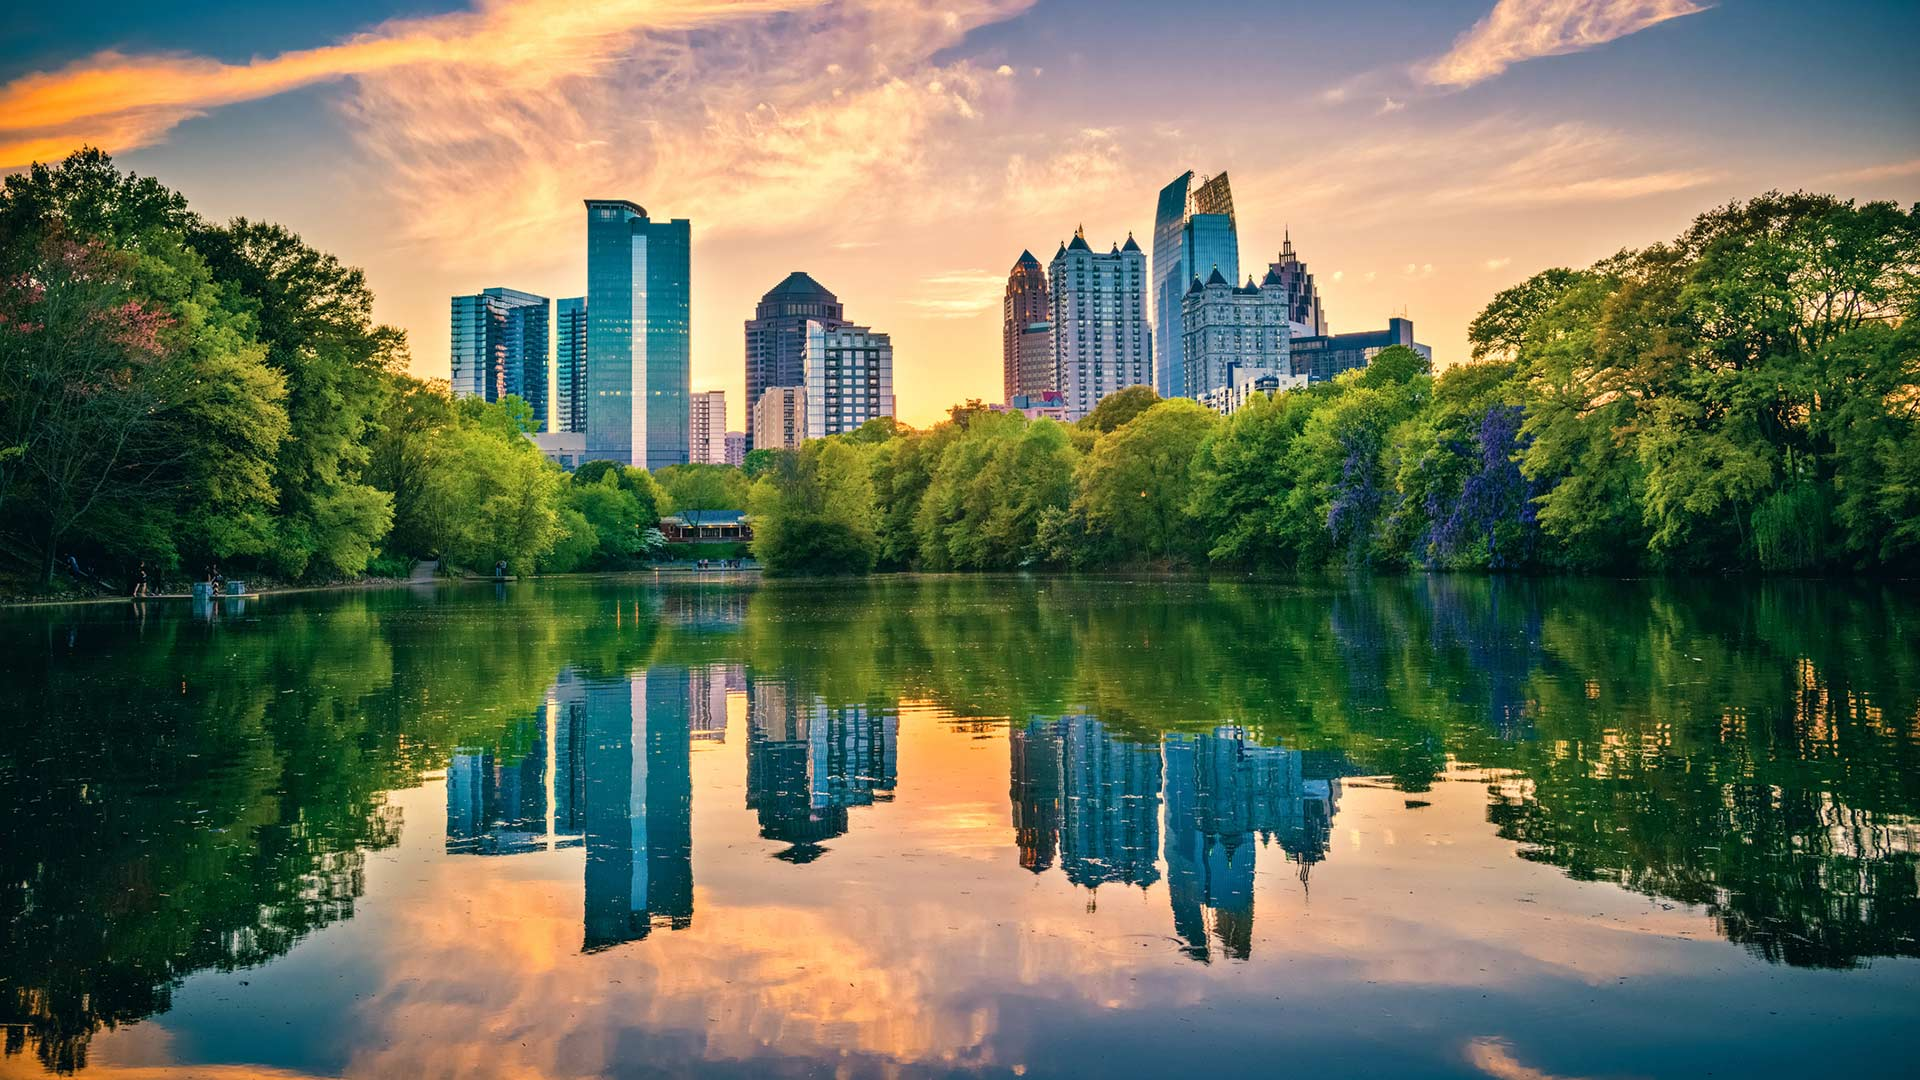 Atlanta Skyline with a pond surrounded by trees in the foreground.